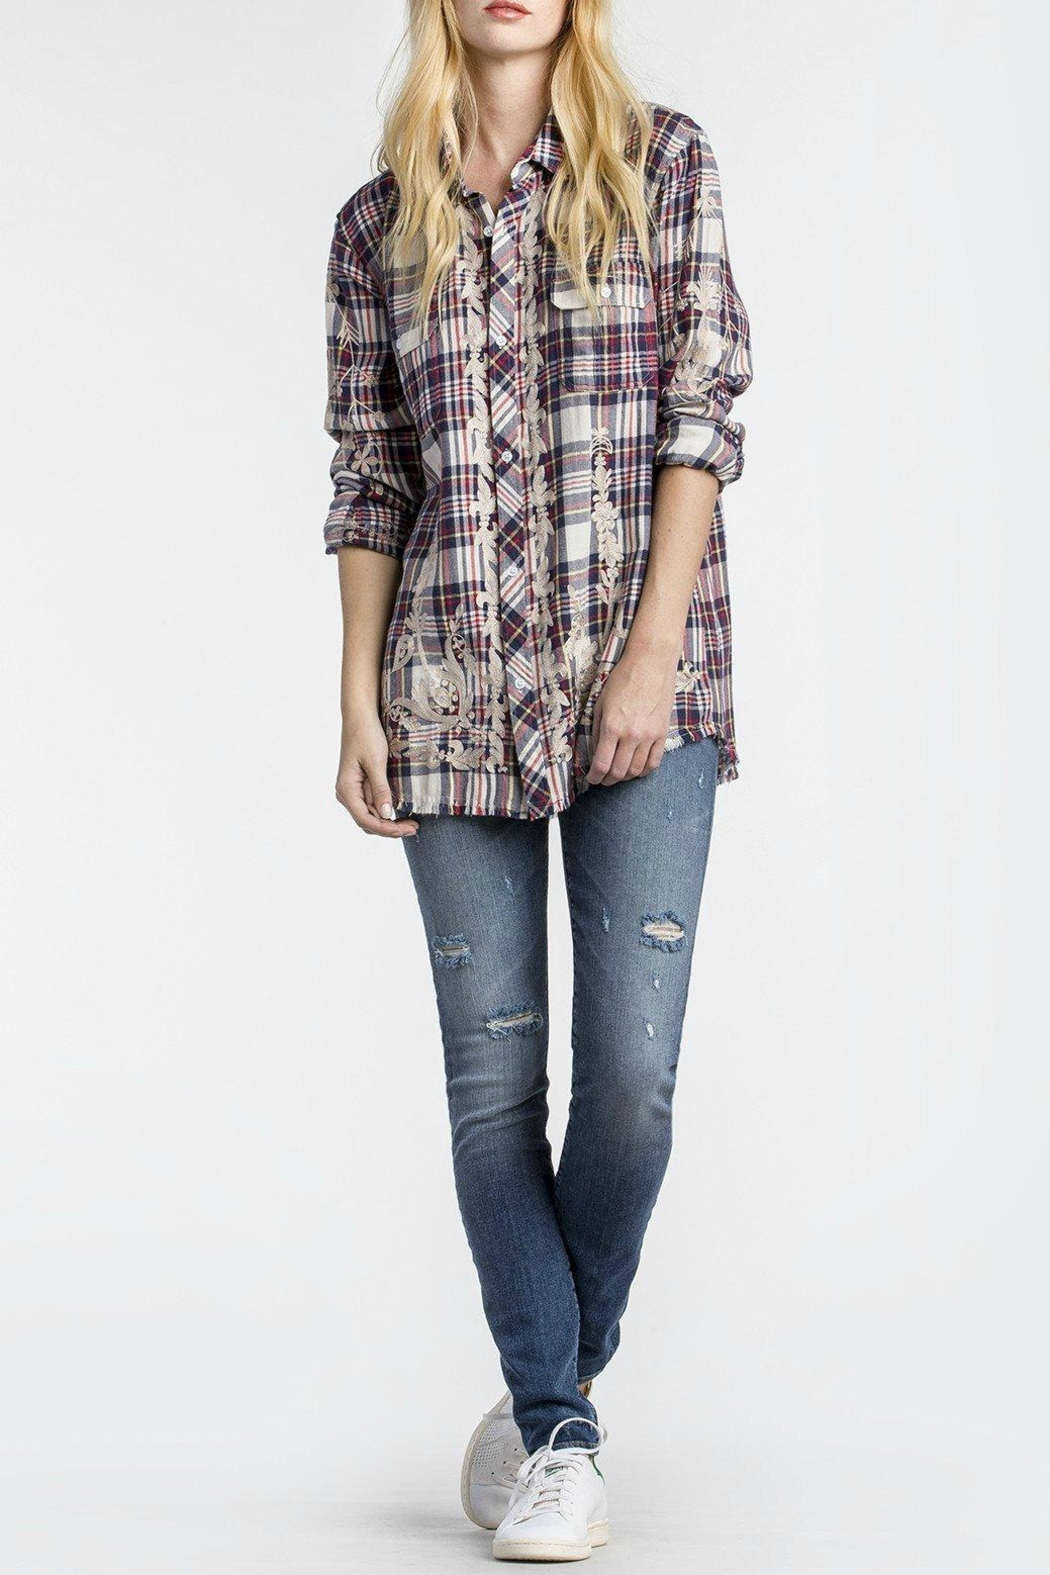 MM Vintage Scroll Embroidered Plaid Top - Main Image